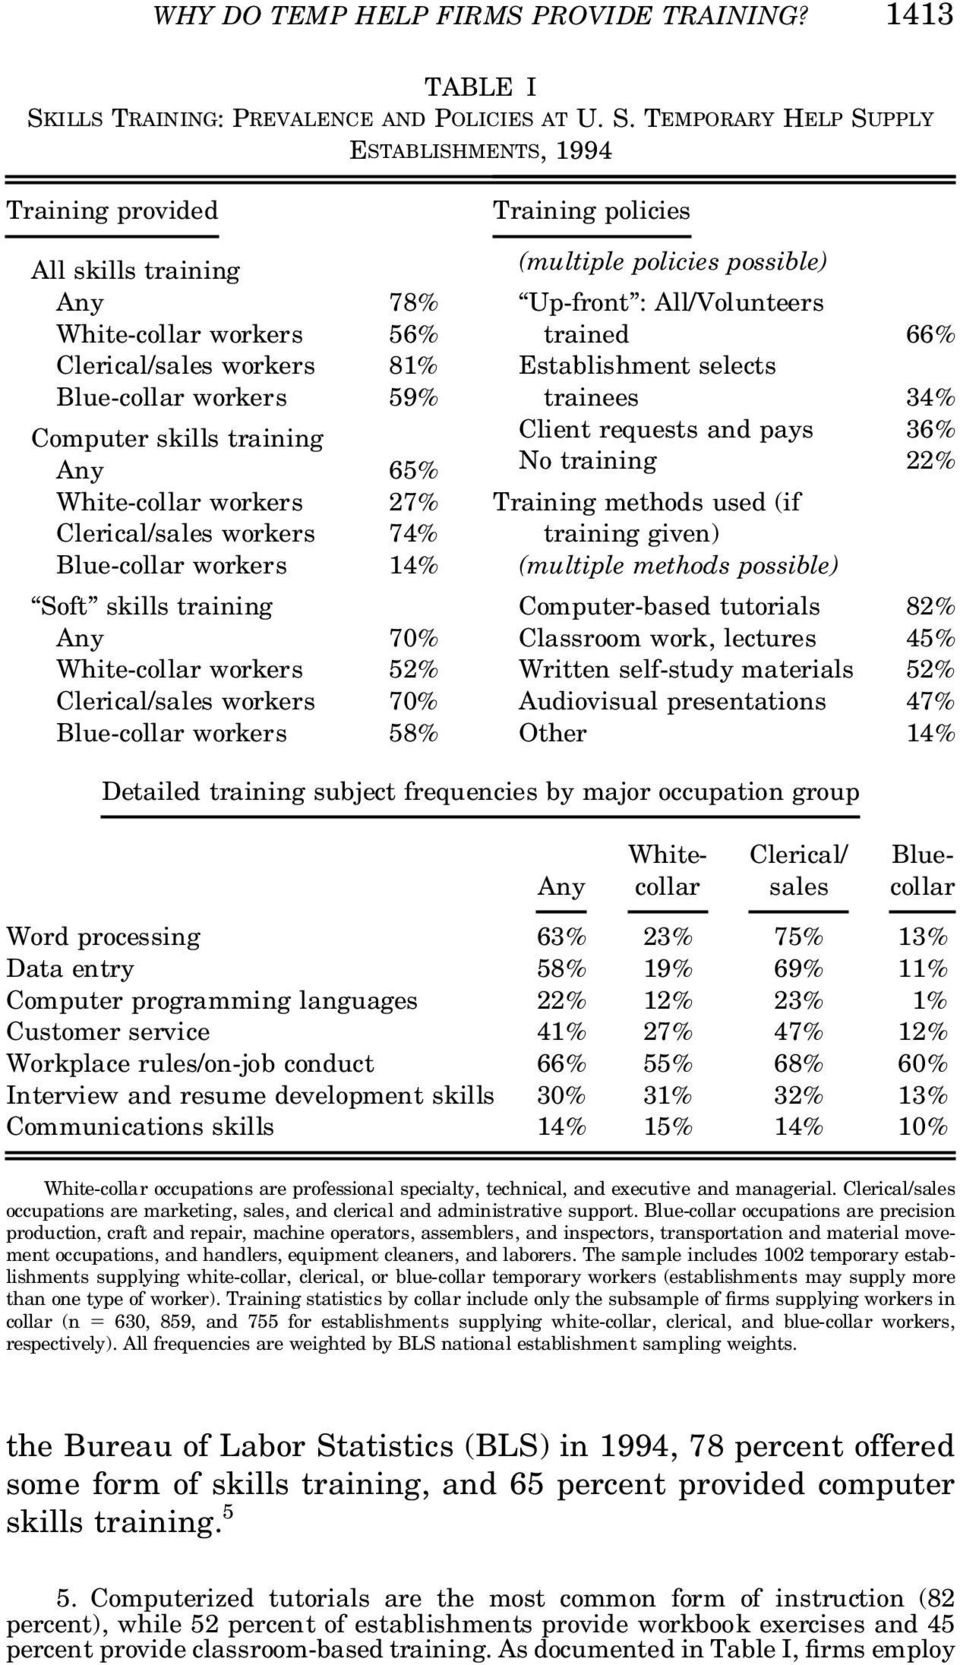 TEMPORARY HELP SUPPLY ESTABLISHMENTS, 1994 Training provided All skills training Any 78% White-collar workers 56% Clerical/sales workers 81% Blue-collar workers 59% Computer skills training Any 65%